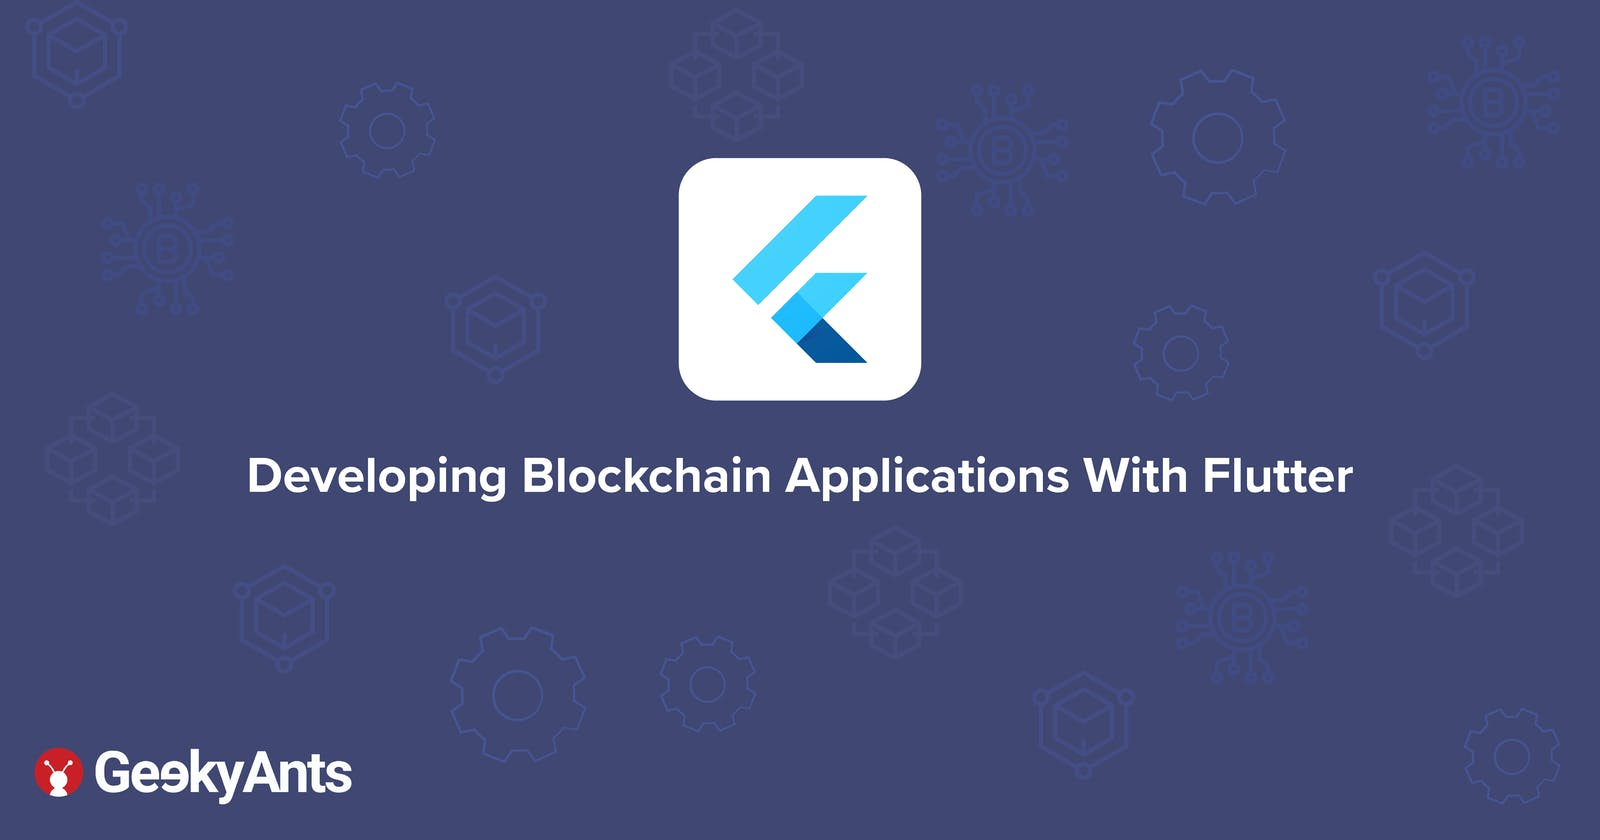 Developing Blockchain Applications With Flutter